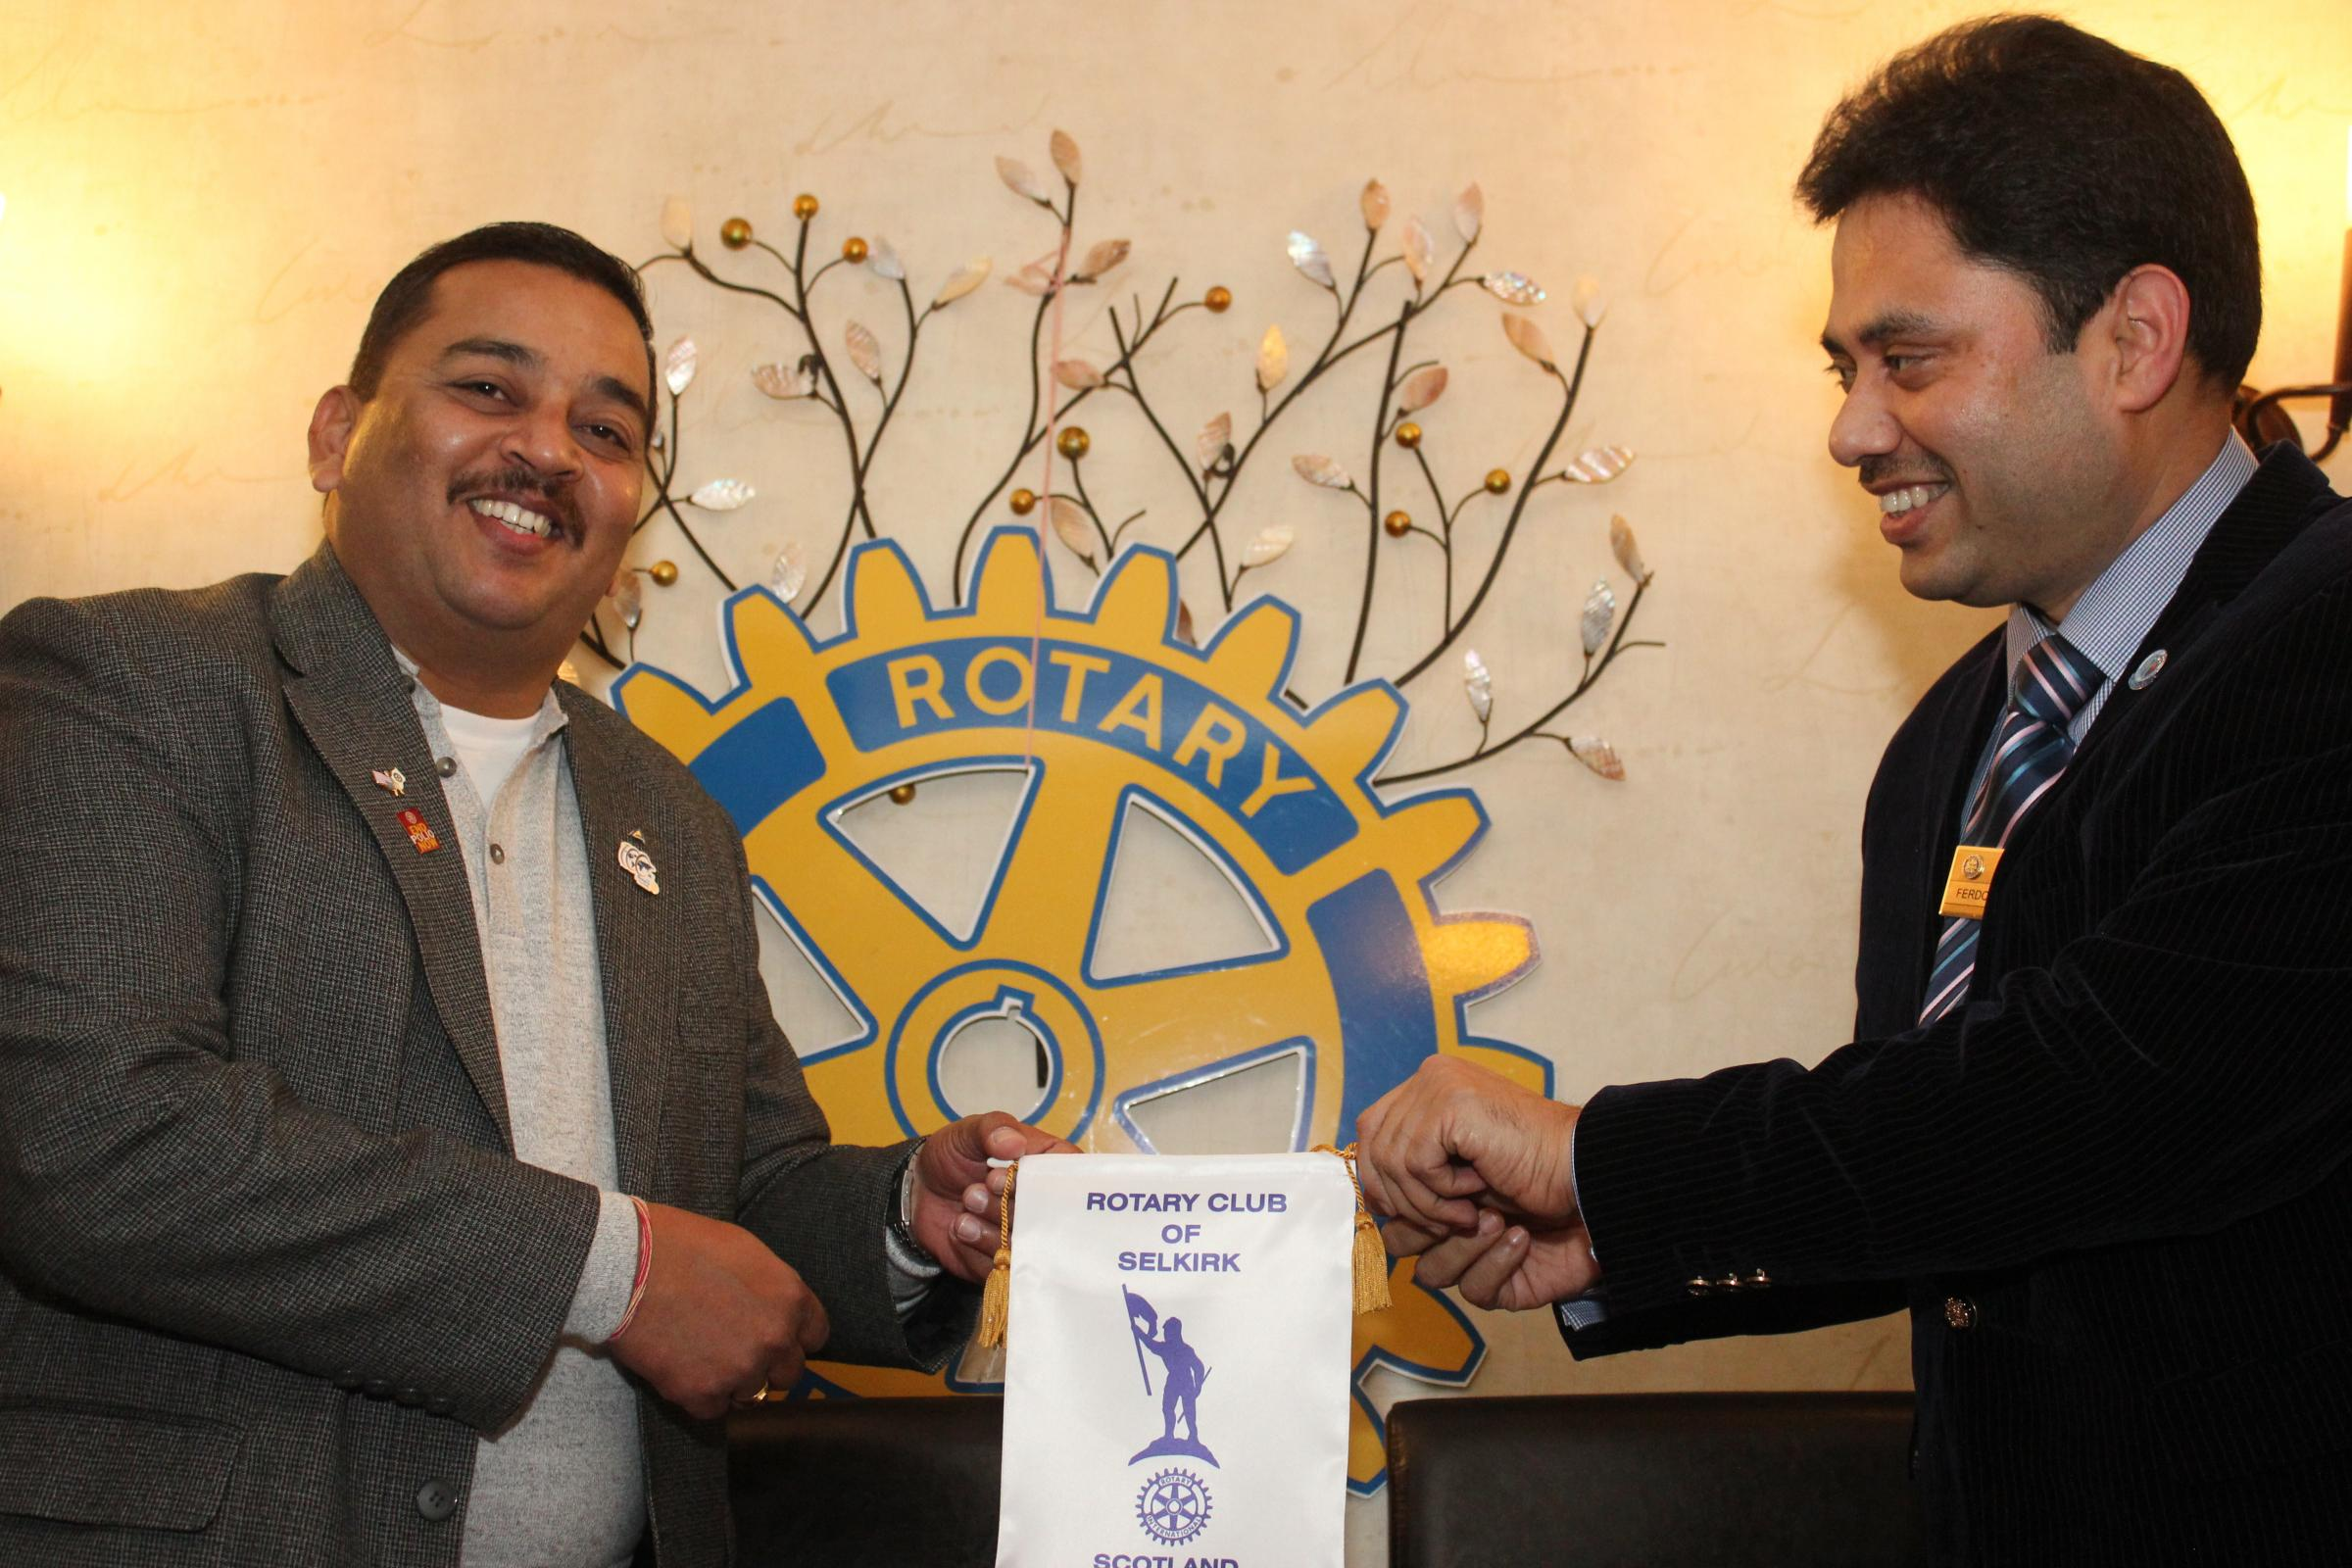 Hrushikesh K Keskar (left) is presented with the Selkirk Rotary Pennant by Ferdous Ahmed, President of Selkirk Rotary Club